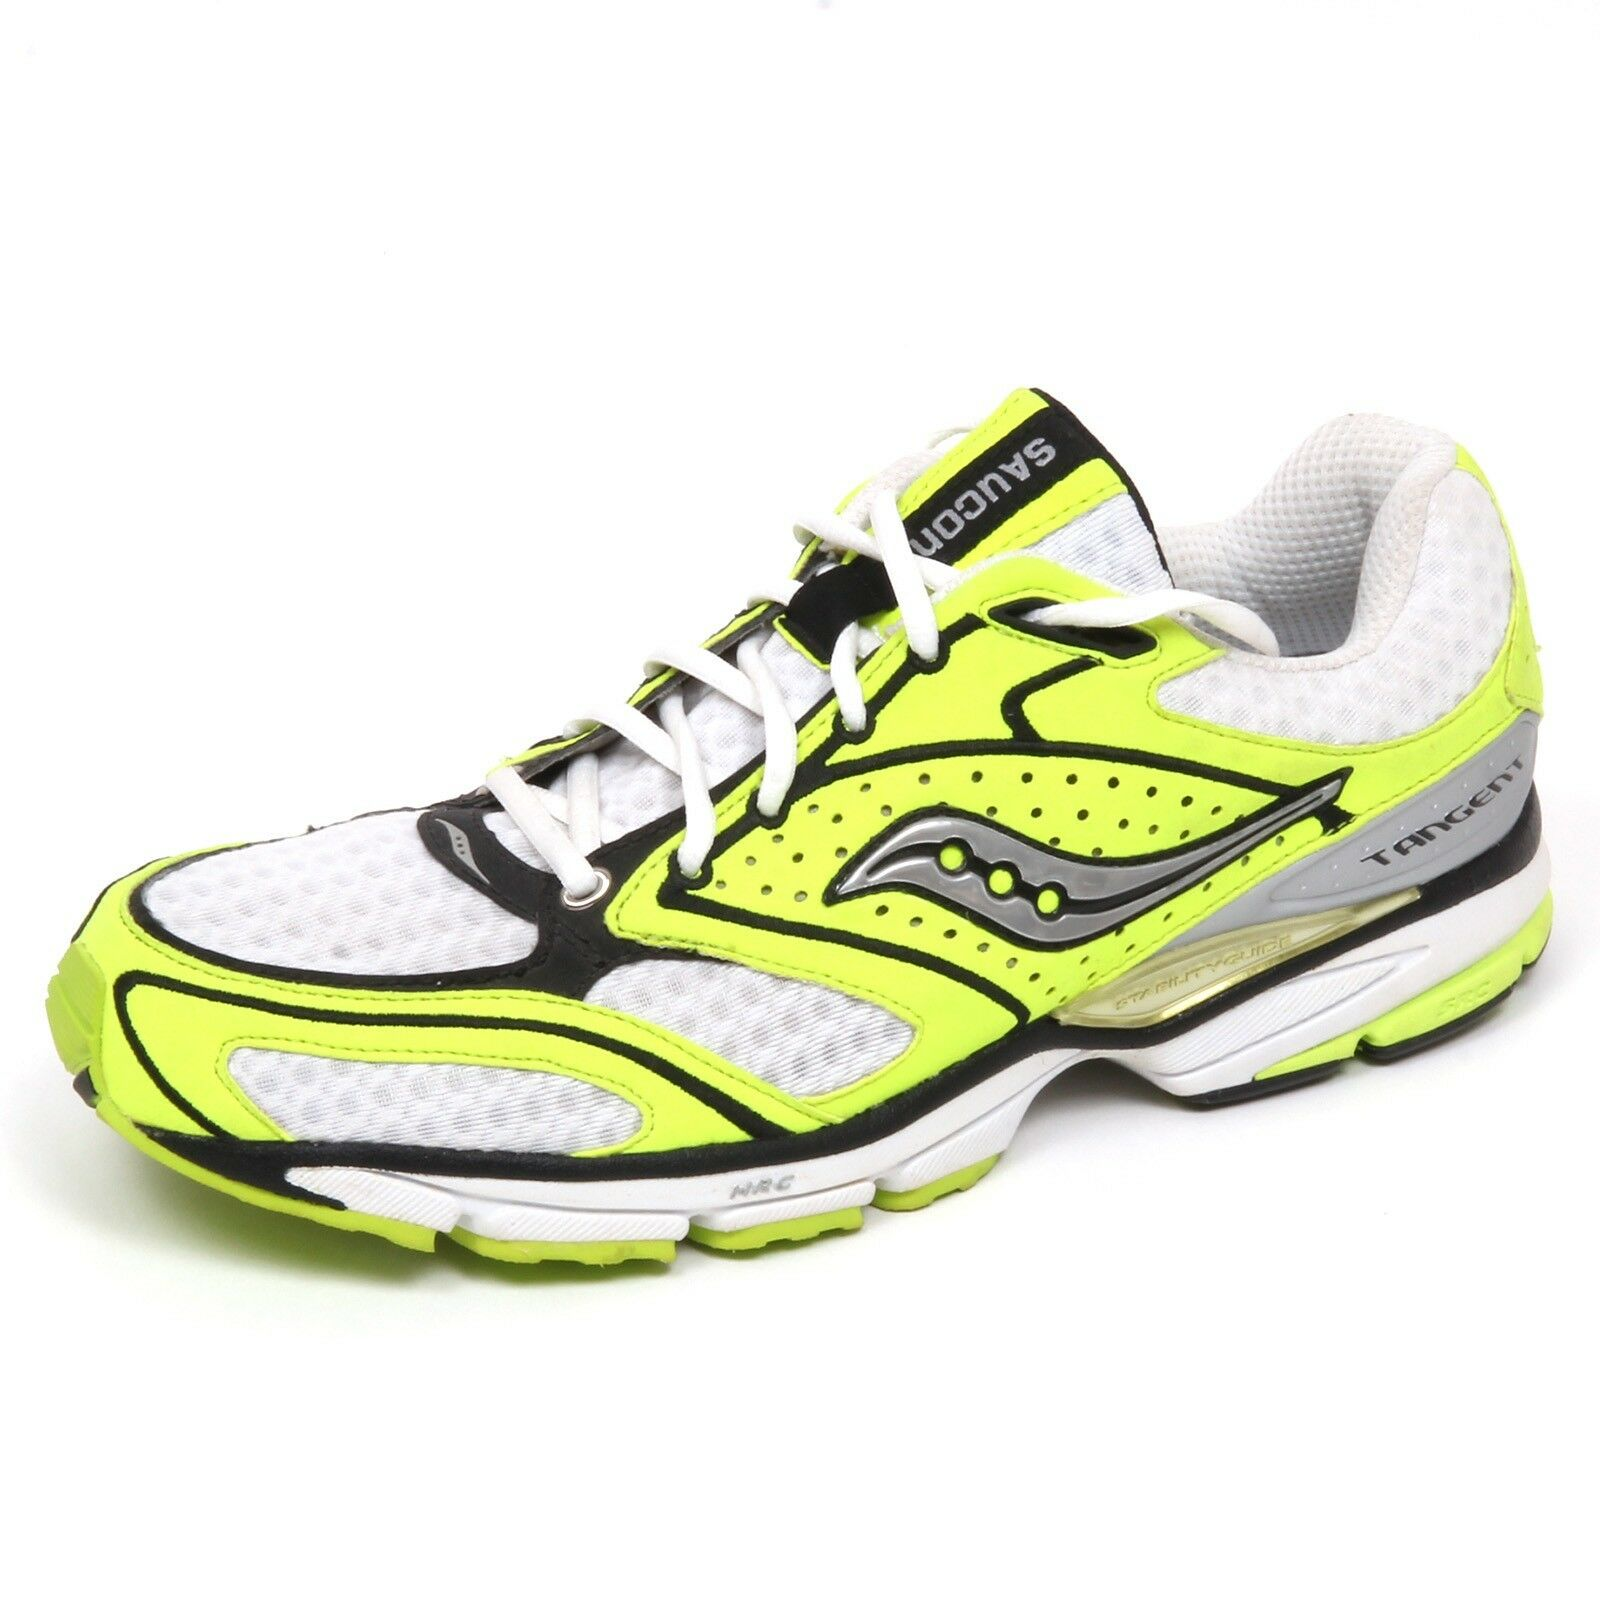 E5198 sneakers uomo SAUCONY GRID TANGENT shoes men